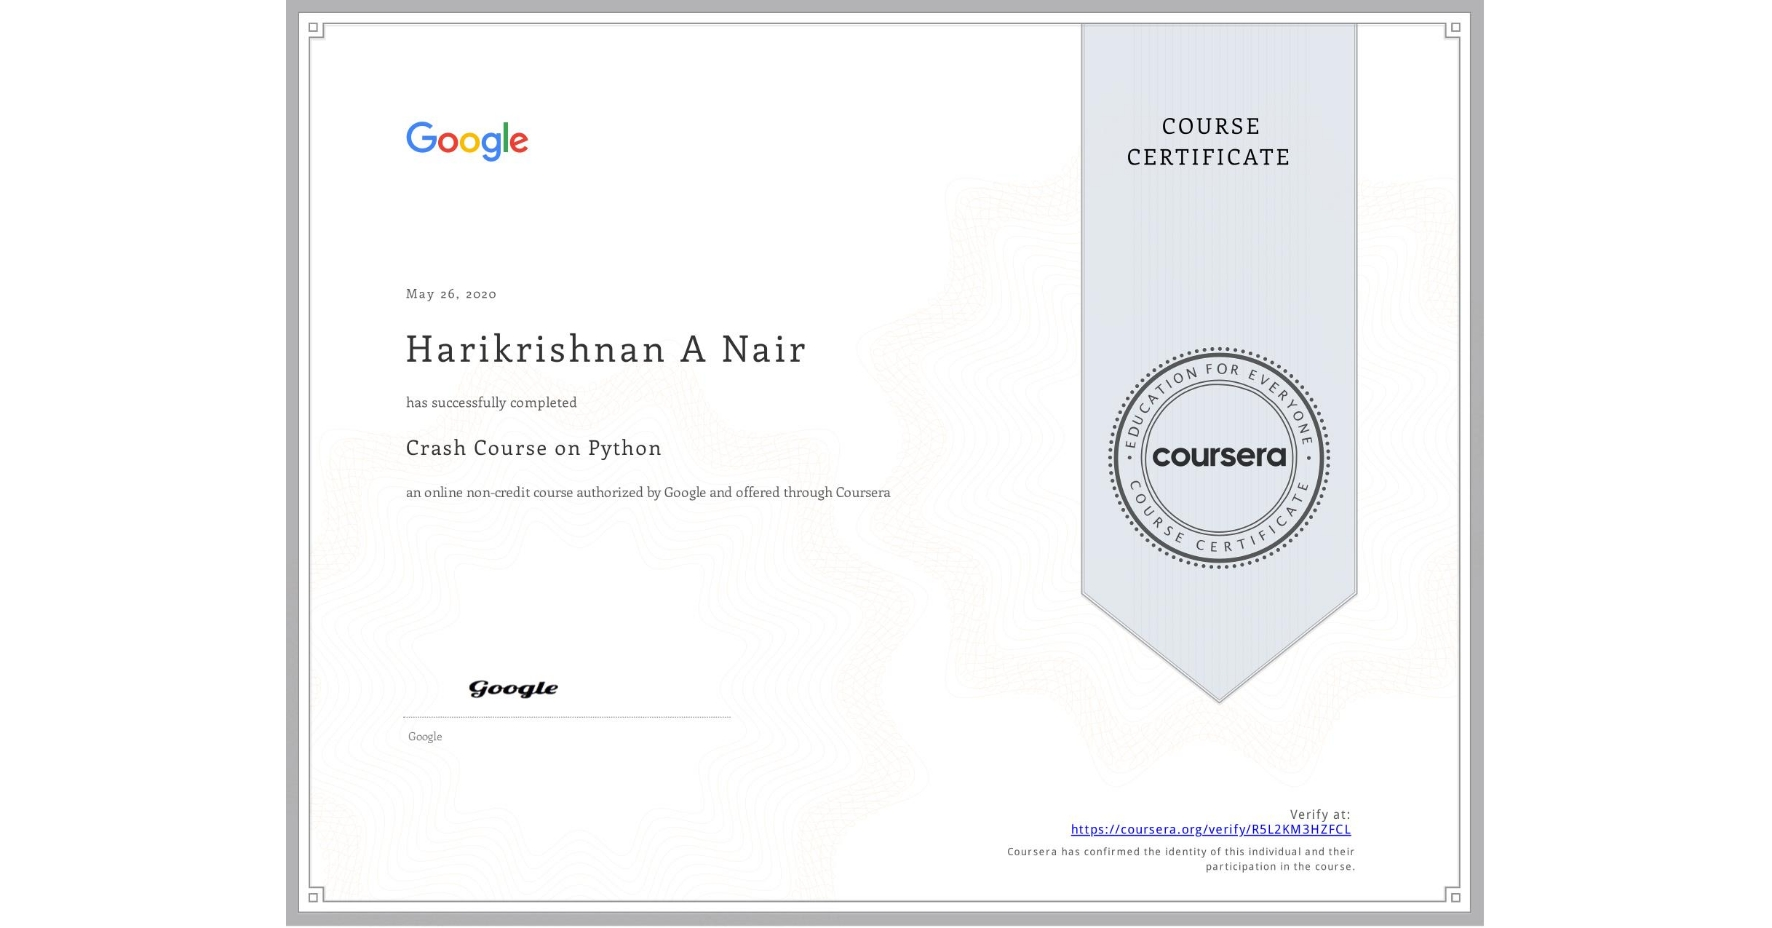 View certificate for Harikrishnan A Nair, Crash Course on Python, an online non-credit course authorized by Google and offered through Coursera